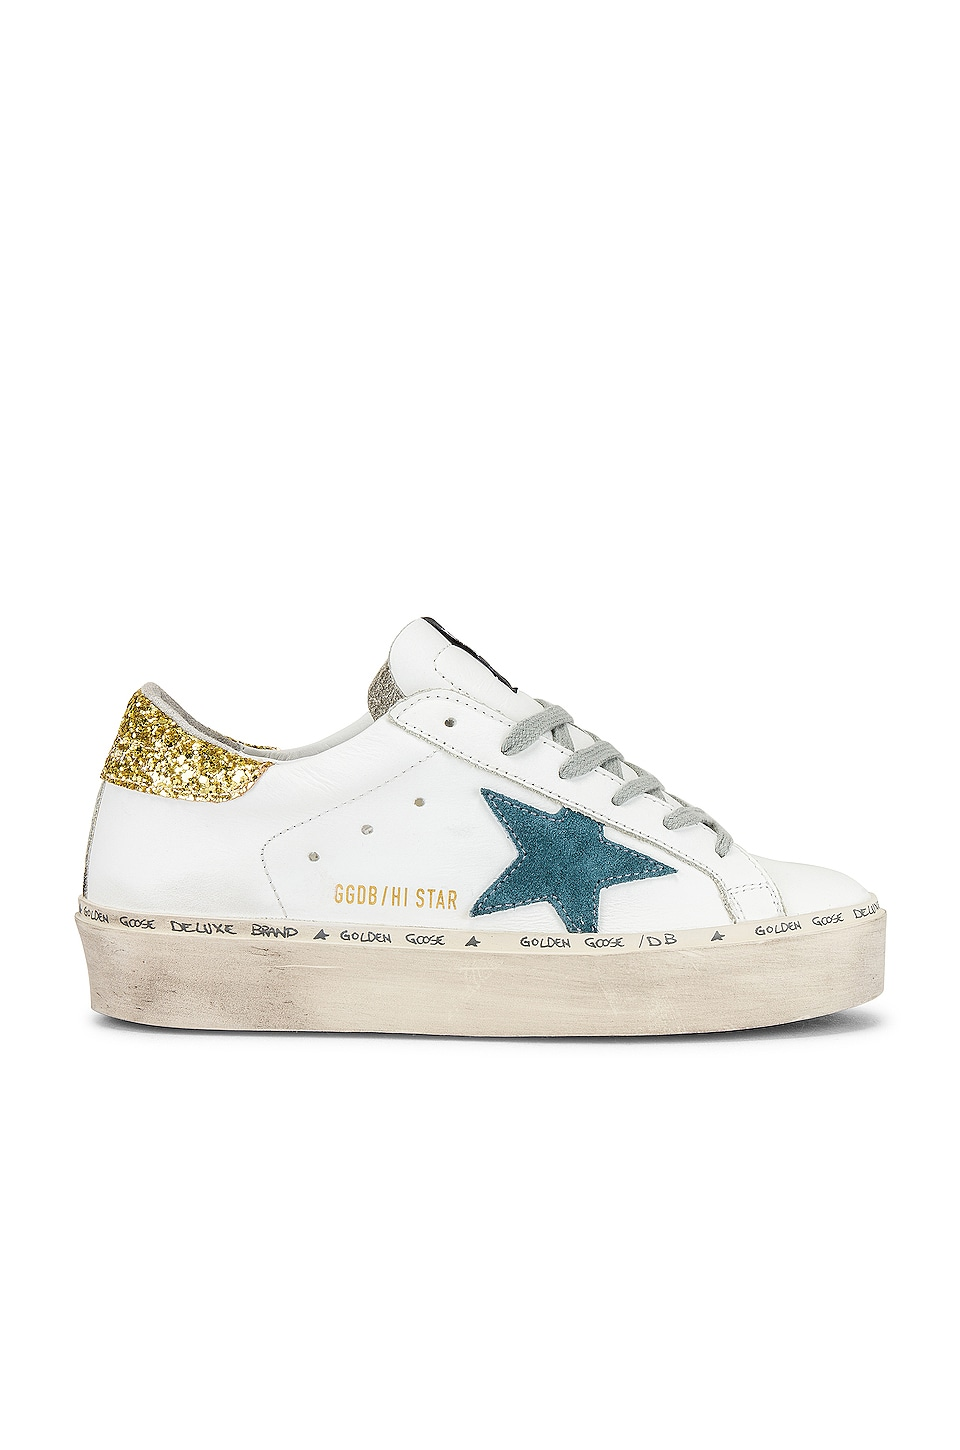 Golden Goose Hi Star Sneaker in White, Petrol Star & Gold Glitter